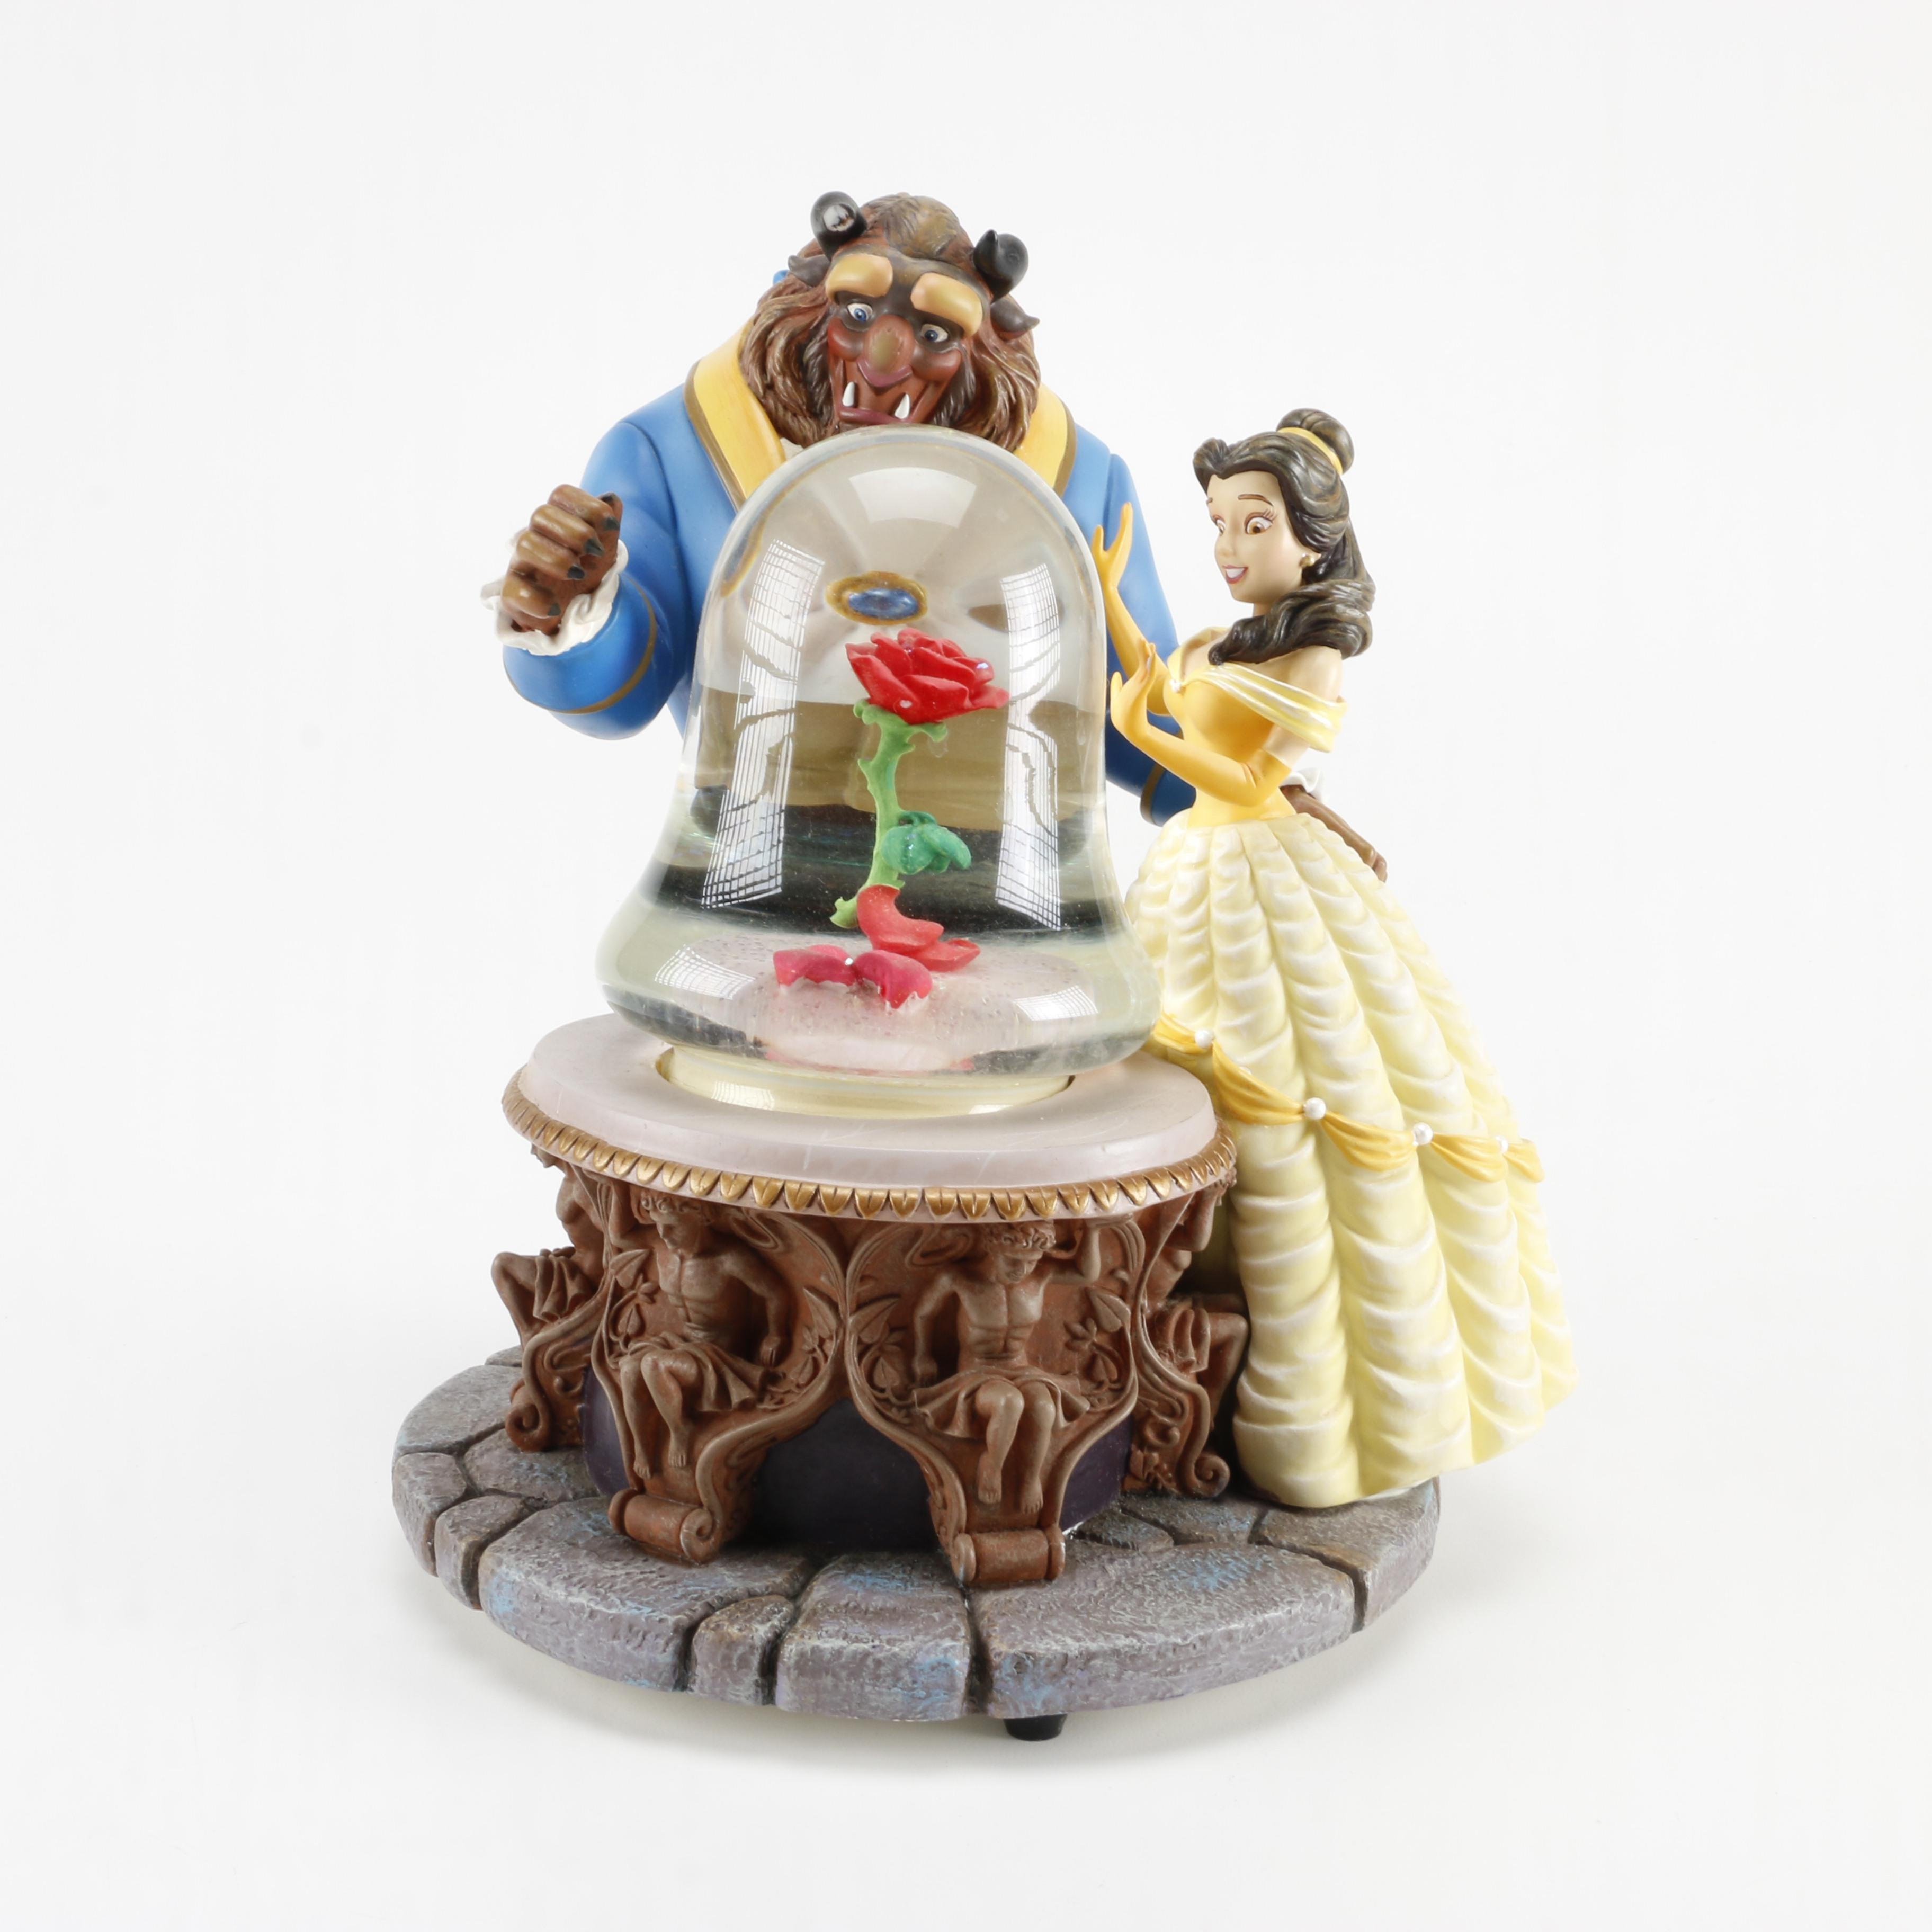 Disney's Beauty and the Beast Snow Globe